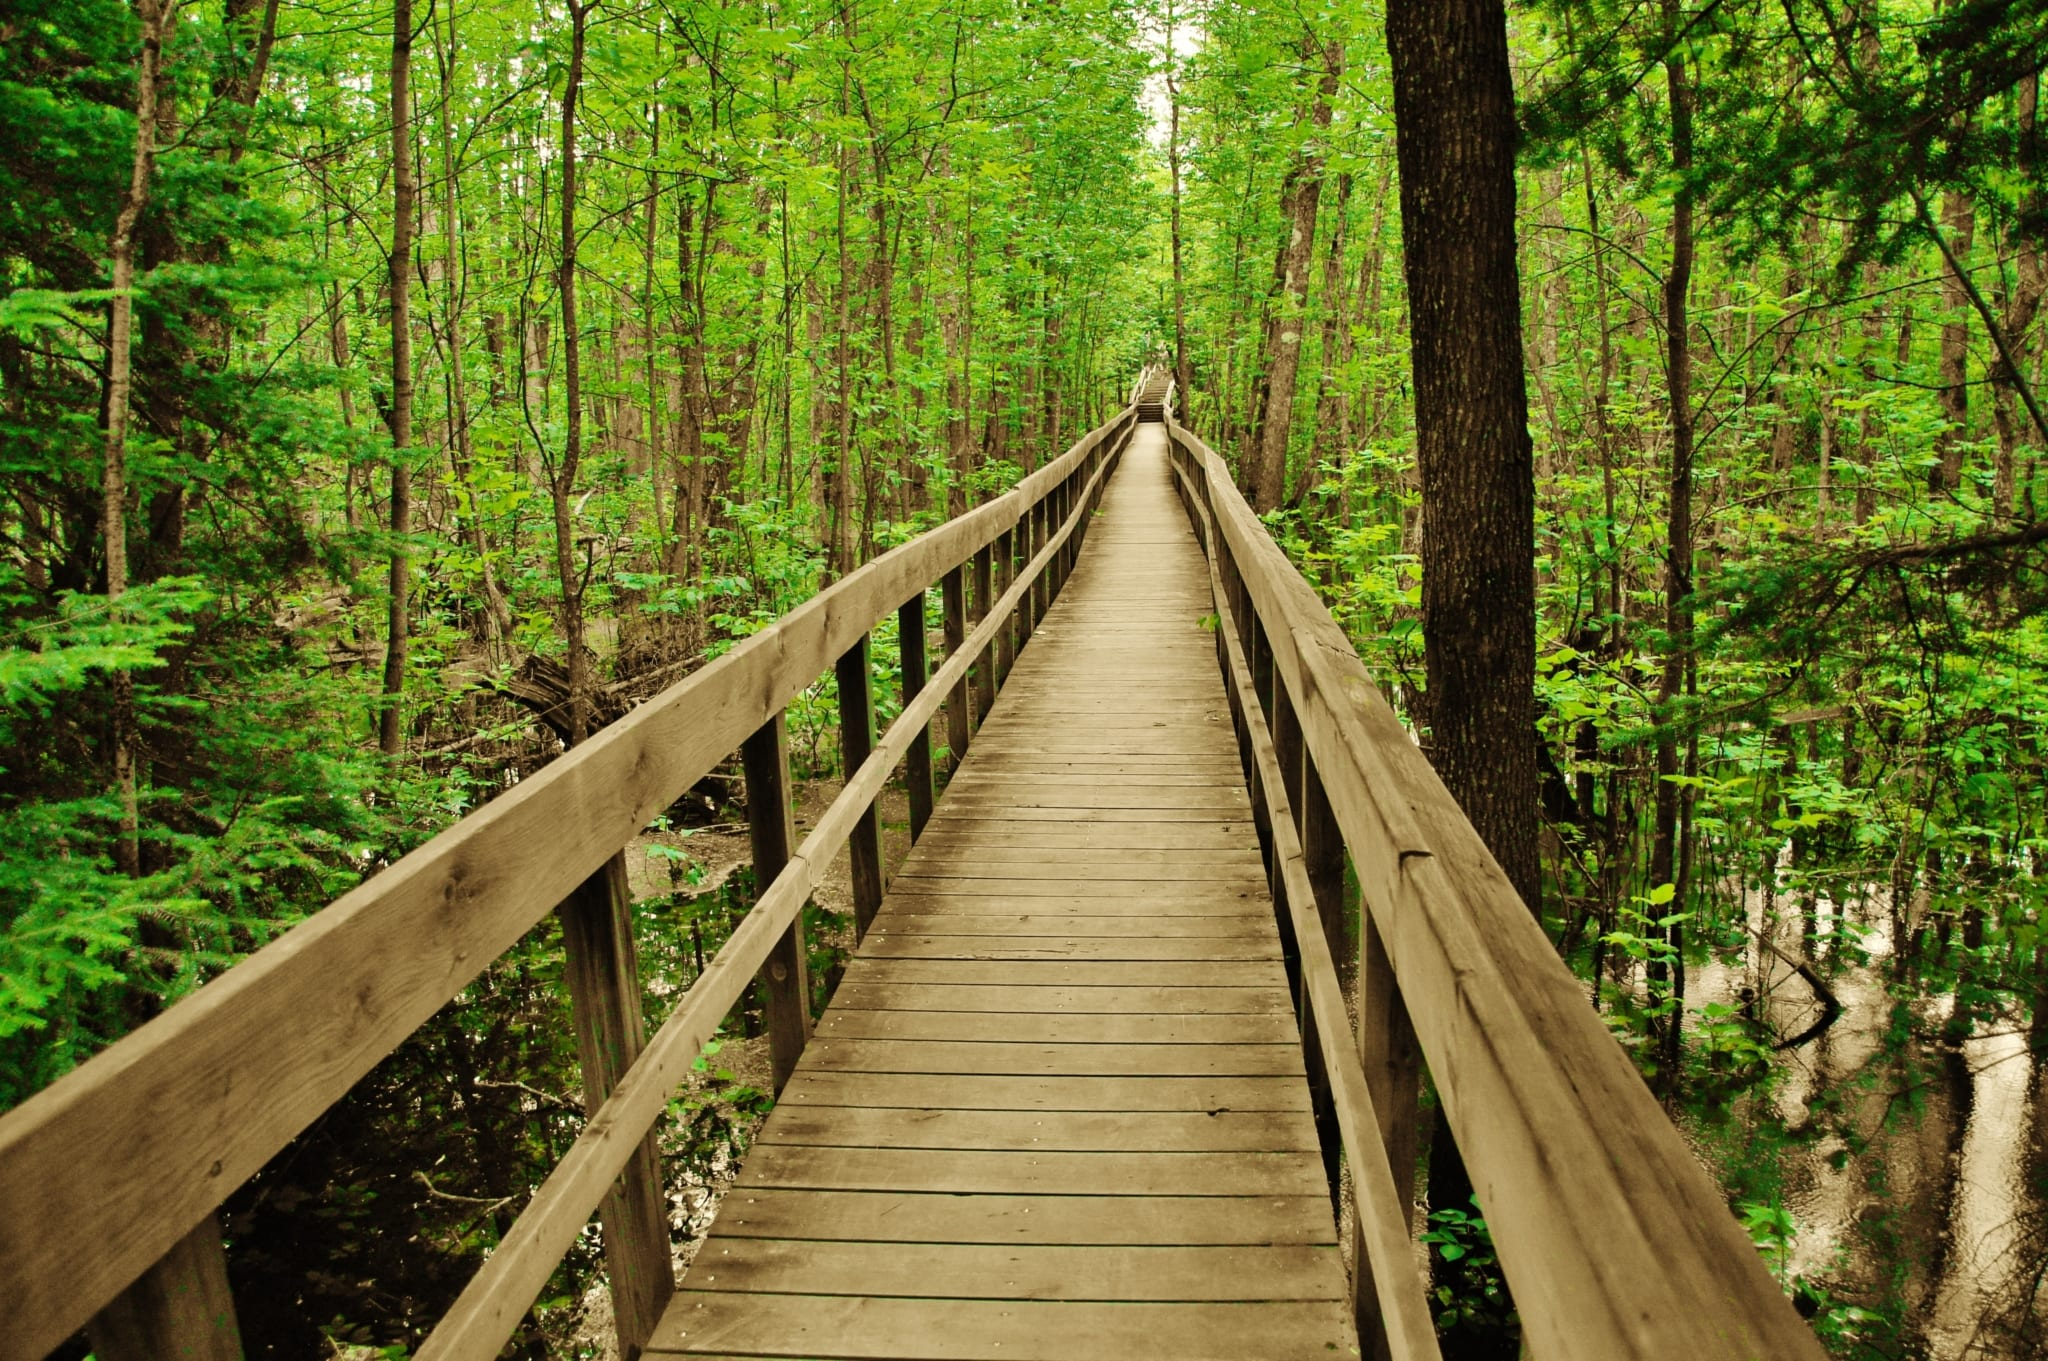 Wooden walkway in forest.